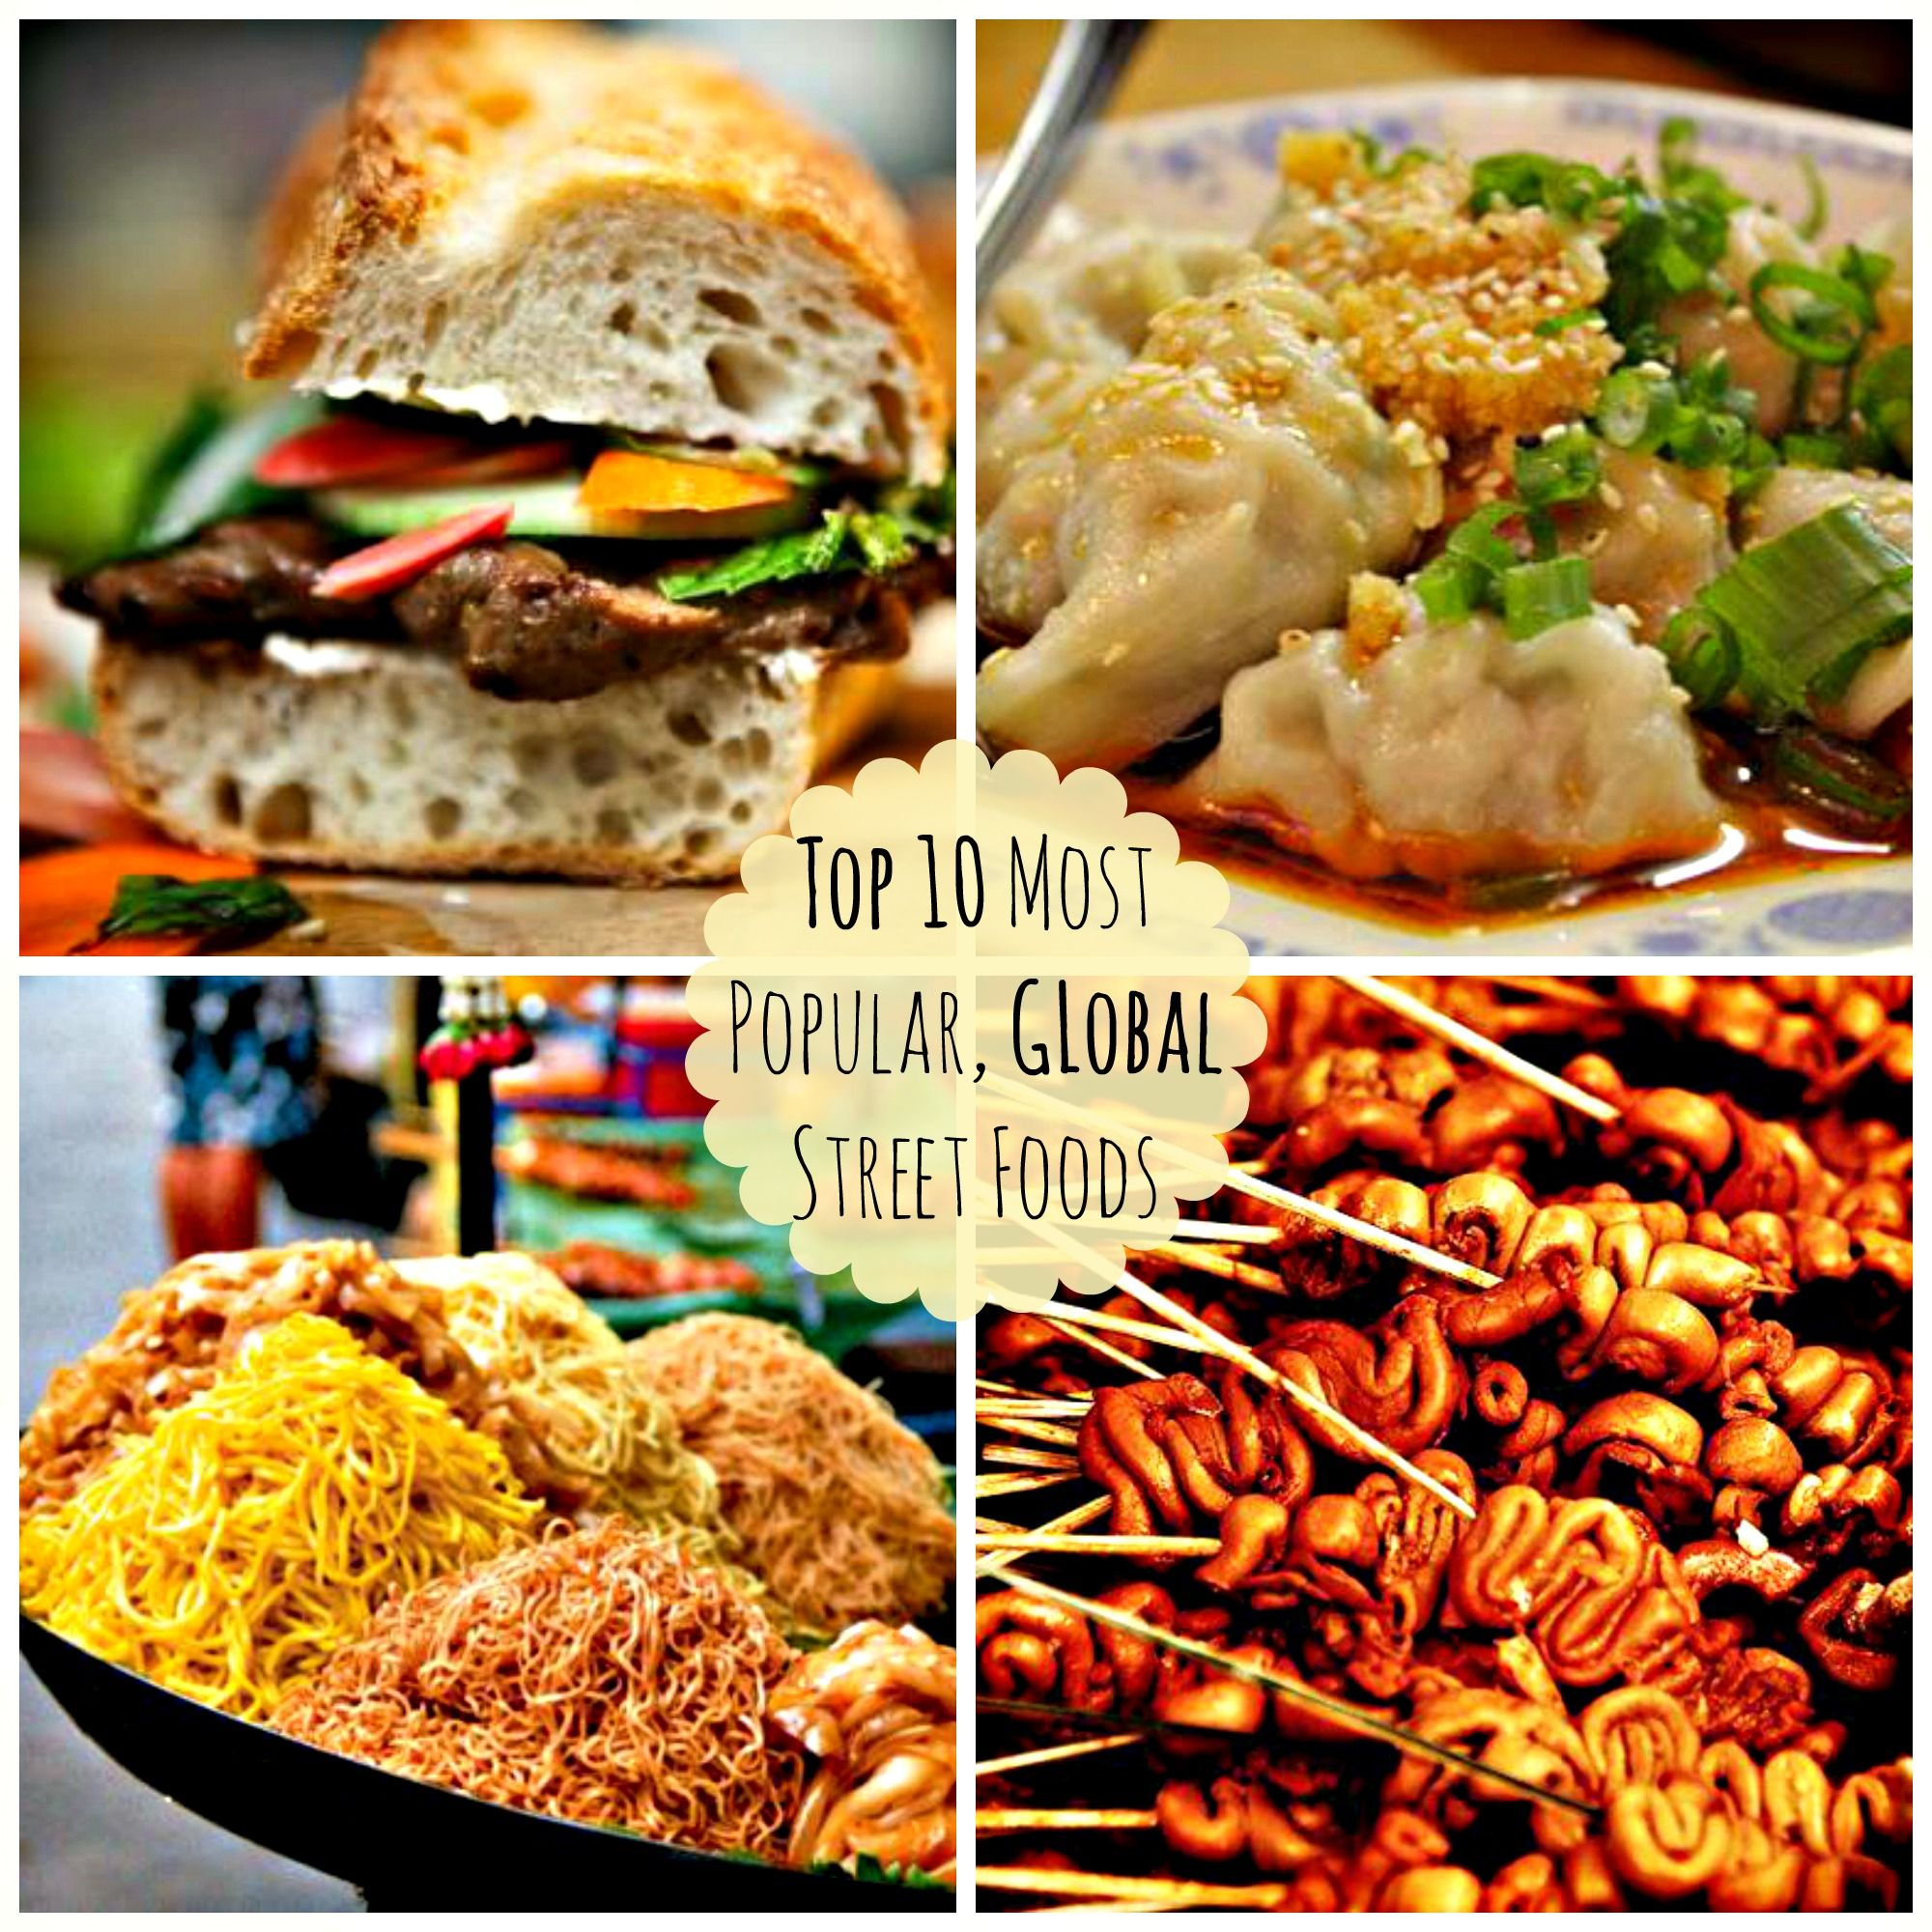 A list of the top 10 most popular street foods from around